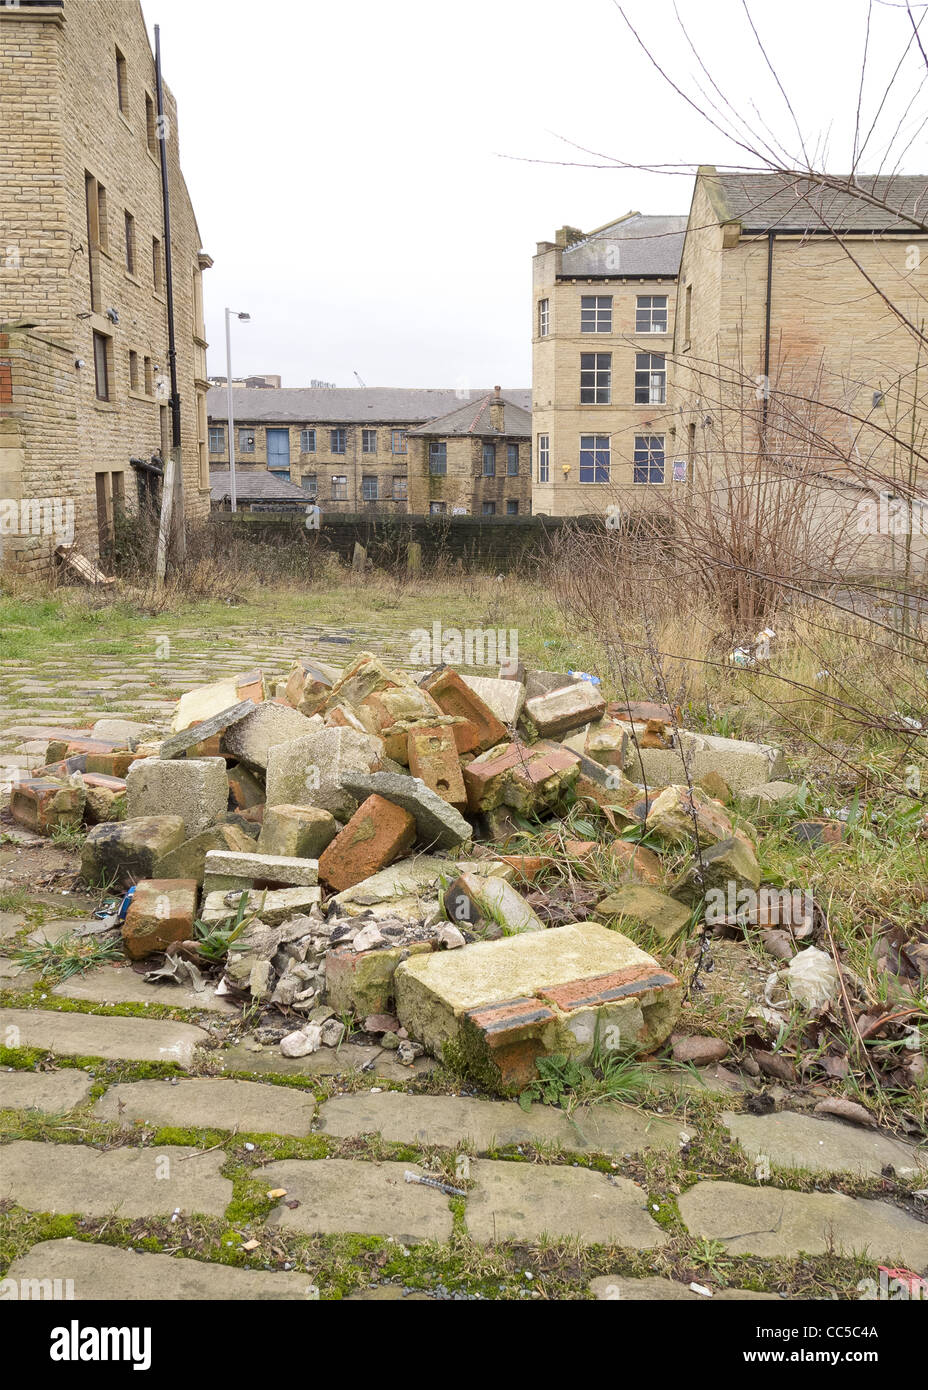 Urban Decay in Bradford - The area around the old mill factories - Stock Image